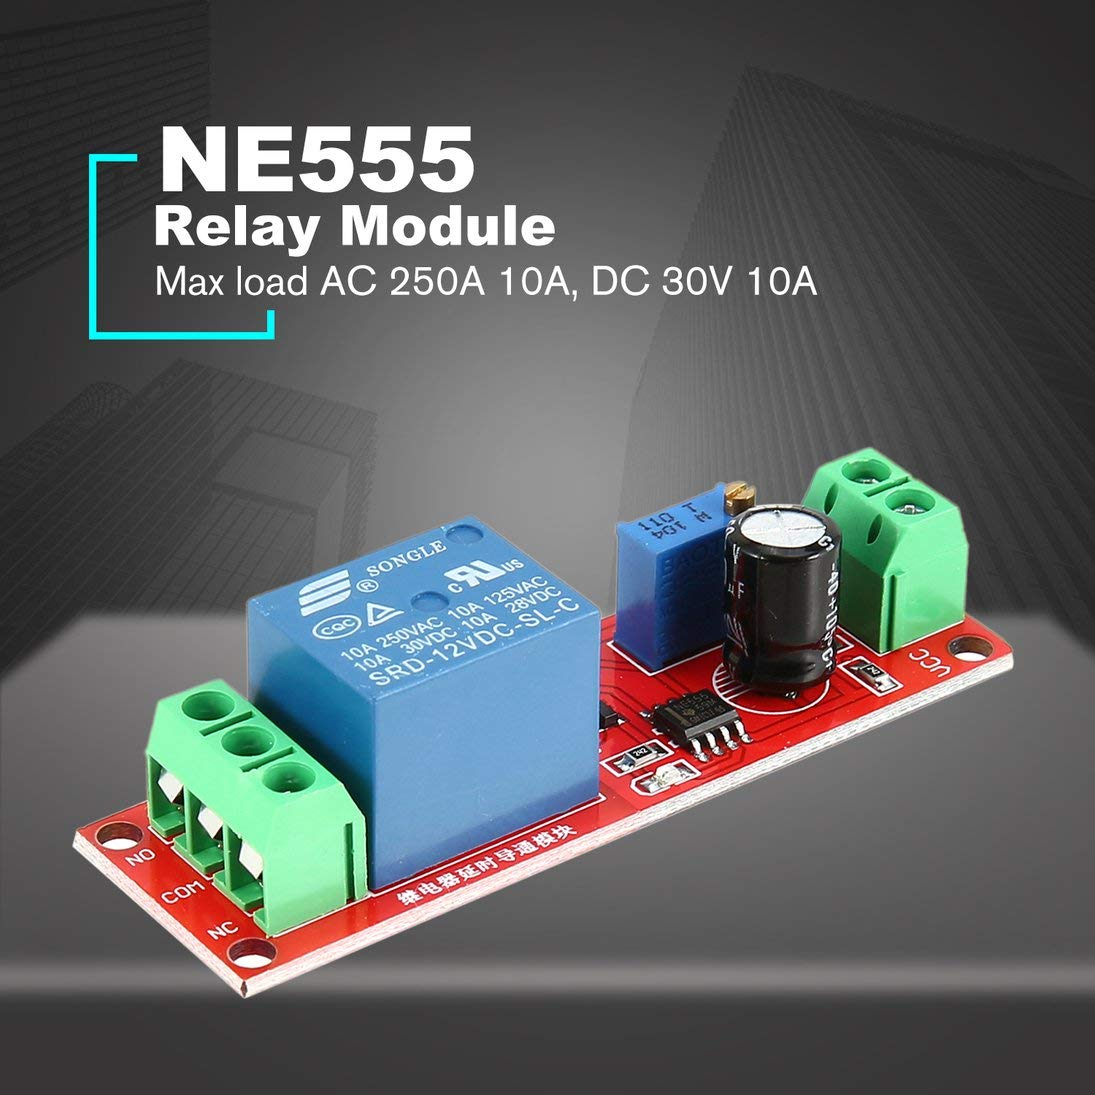 Baynne DC 12V NE555 Monostable Delay Relay Circuit Conduction Module Trigger Switch Timer Adjustable Time Shield Electronics Arduino by Baynne (Image #2)